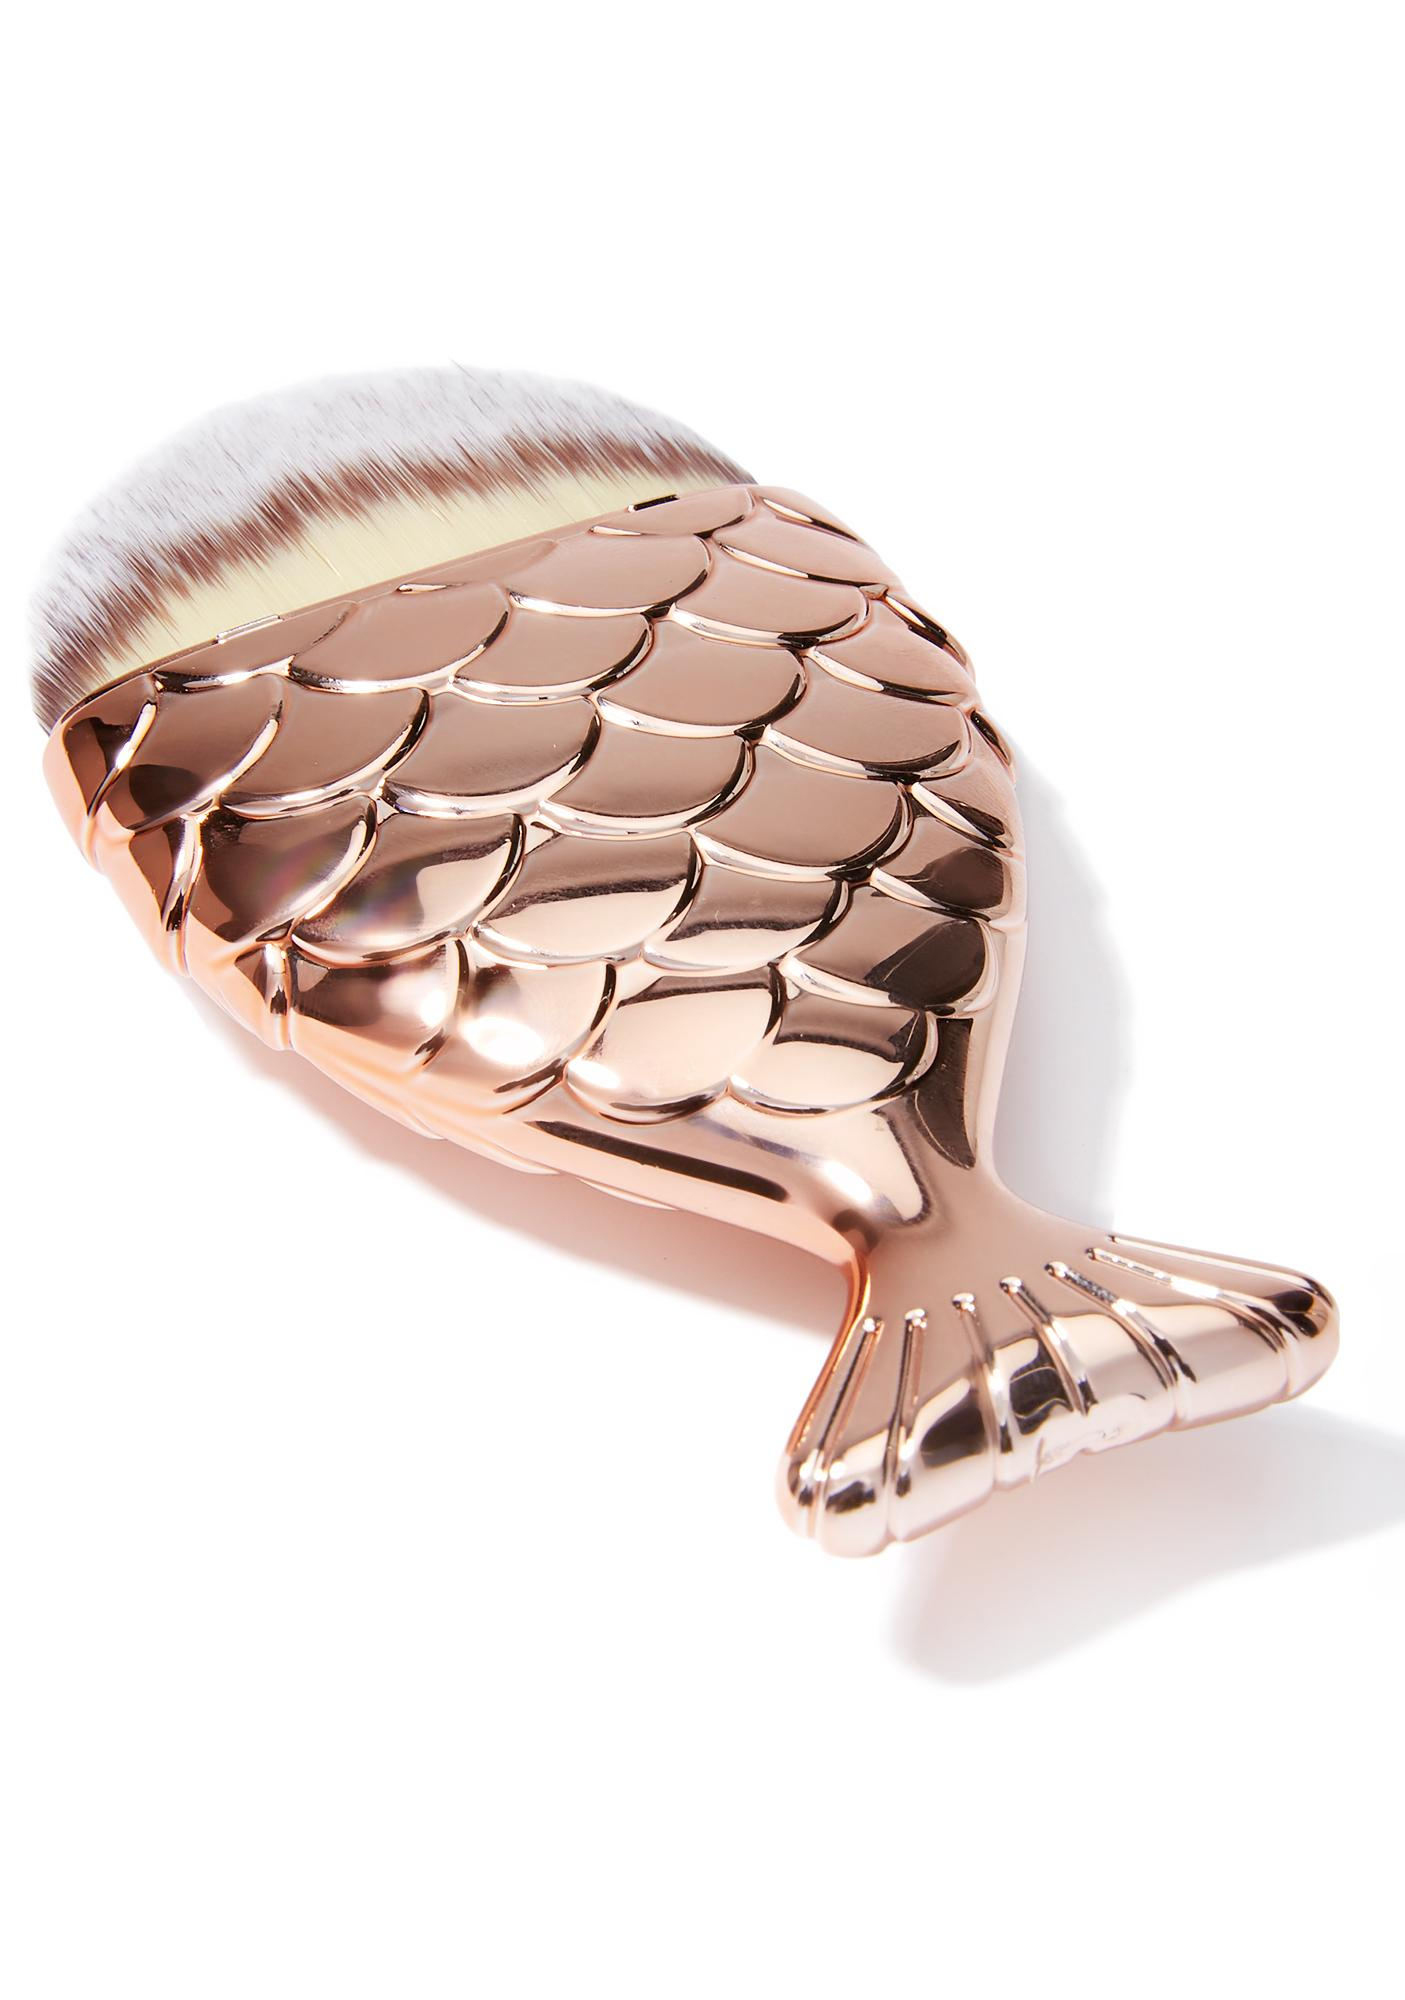 Mermaid Salon Chubby Mermaid Brush